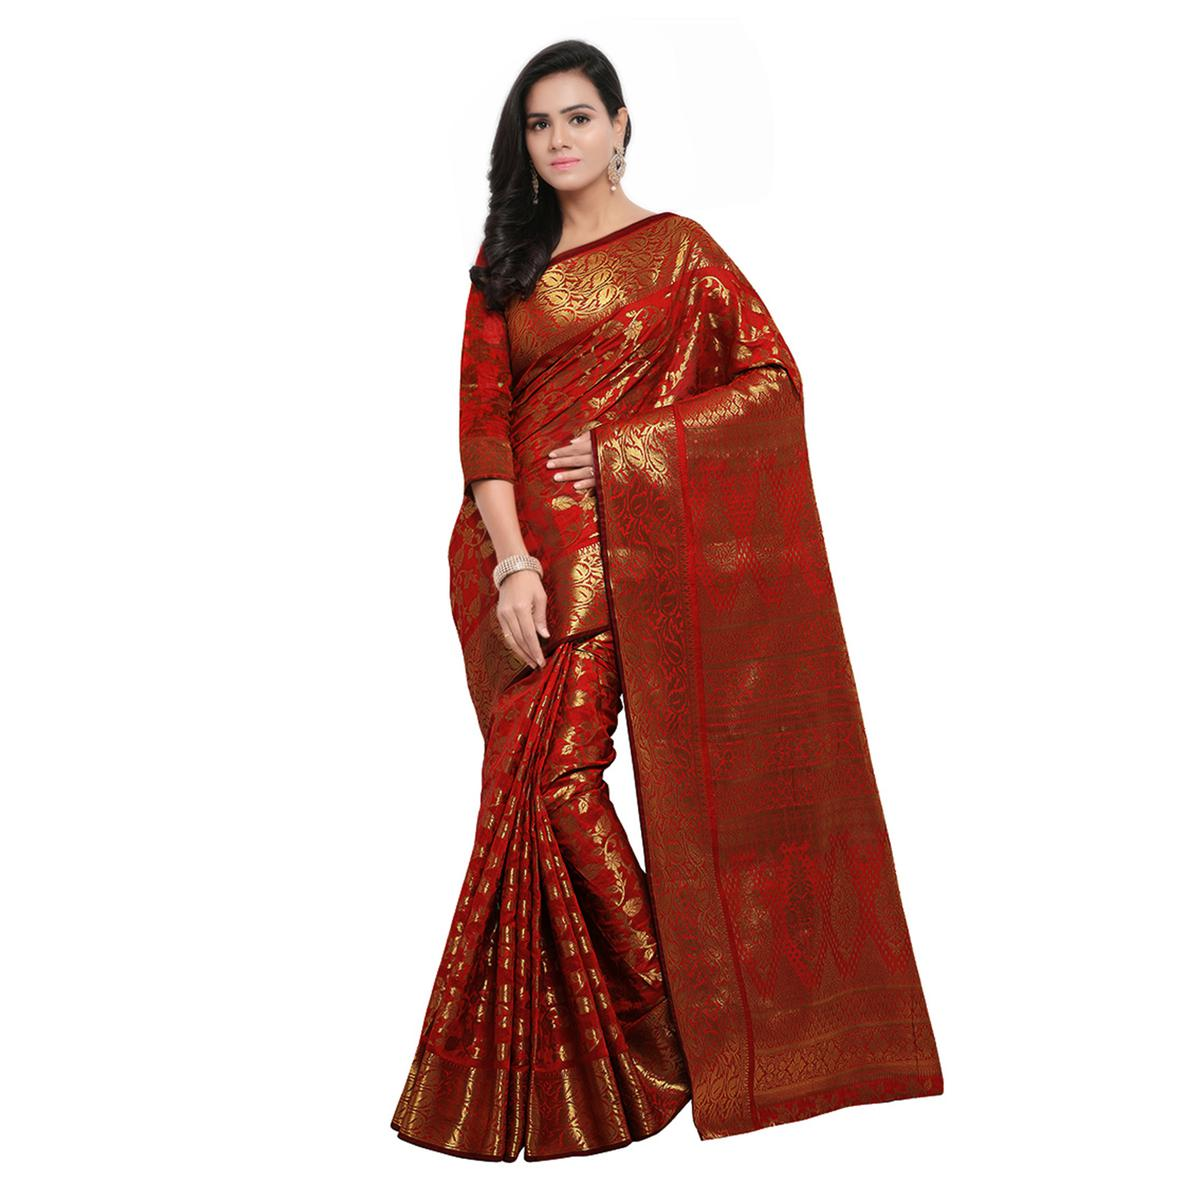 Maroon Festive Wear Banarasi Art Silk Saree